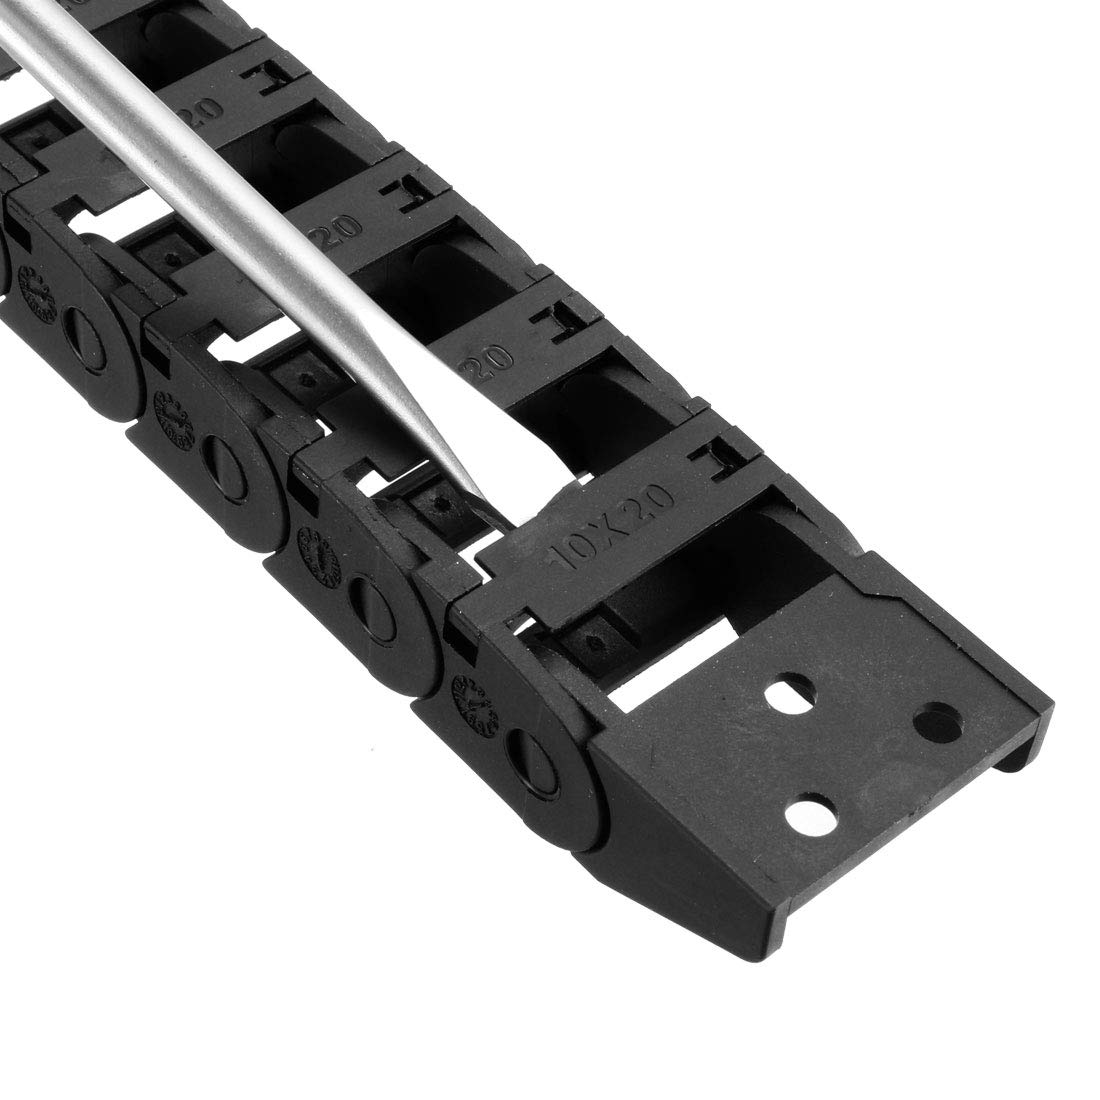 uxcell Drag Chain Cable Carrier Open Type with End Connectors R55 25X57mm 1 Meter Plastic for Electrical CNC Router Machines Black